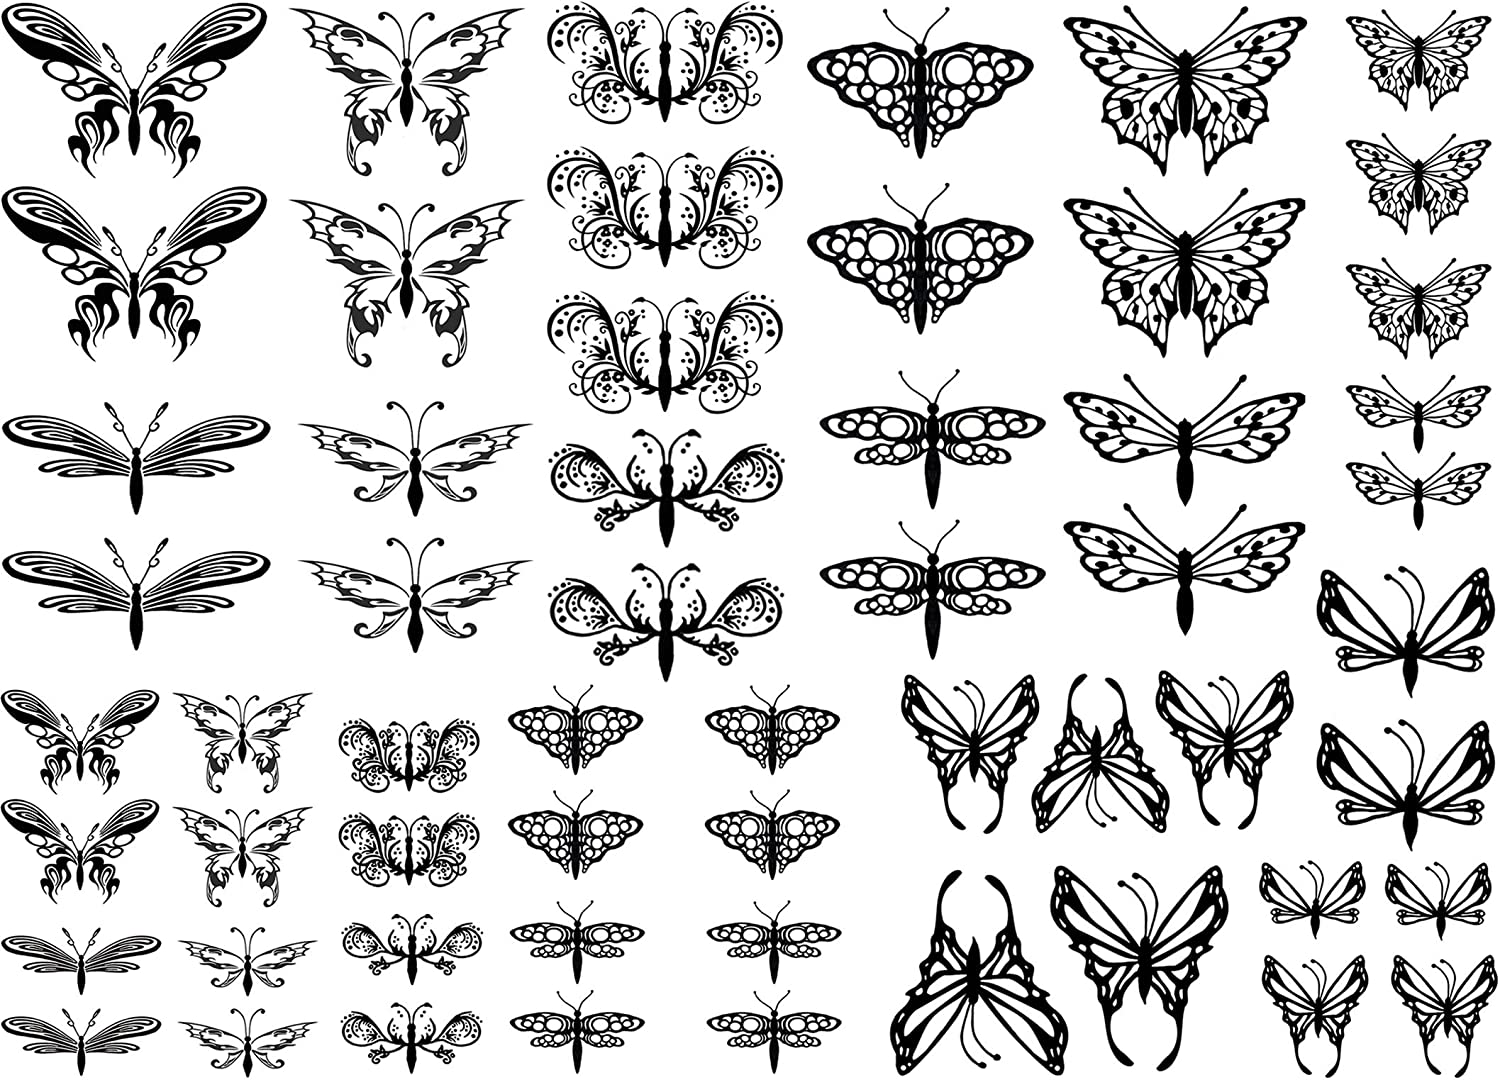 Butterflies /& Dragonflies 1//2 to 1-1//4 Black 16CC563 Fused Glass Decals